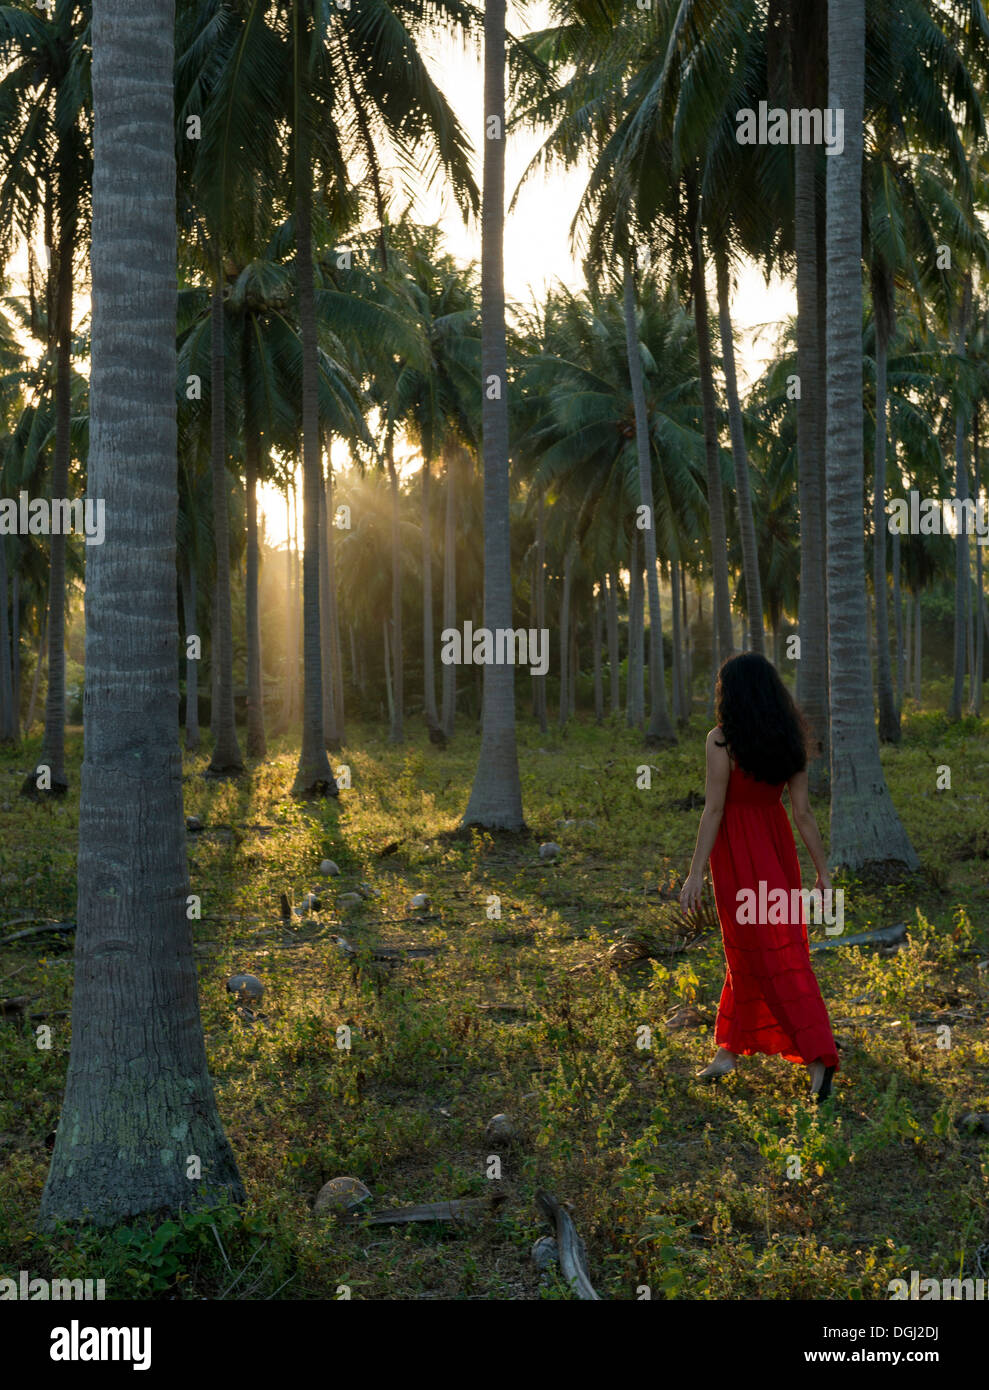 Woman wearing red dress walking in forest of palm trees - Stock Image